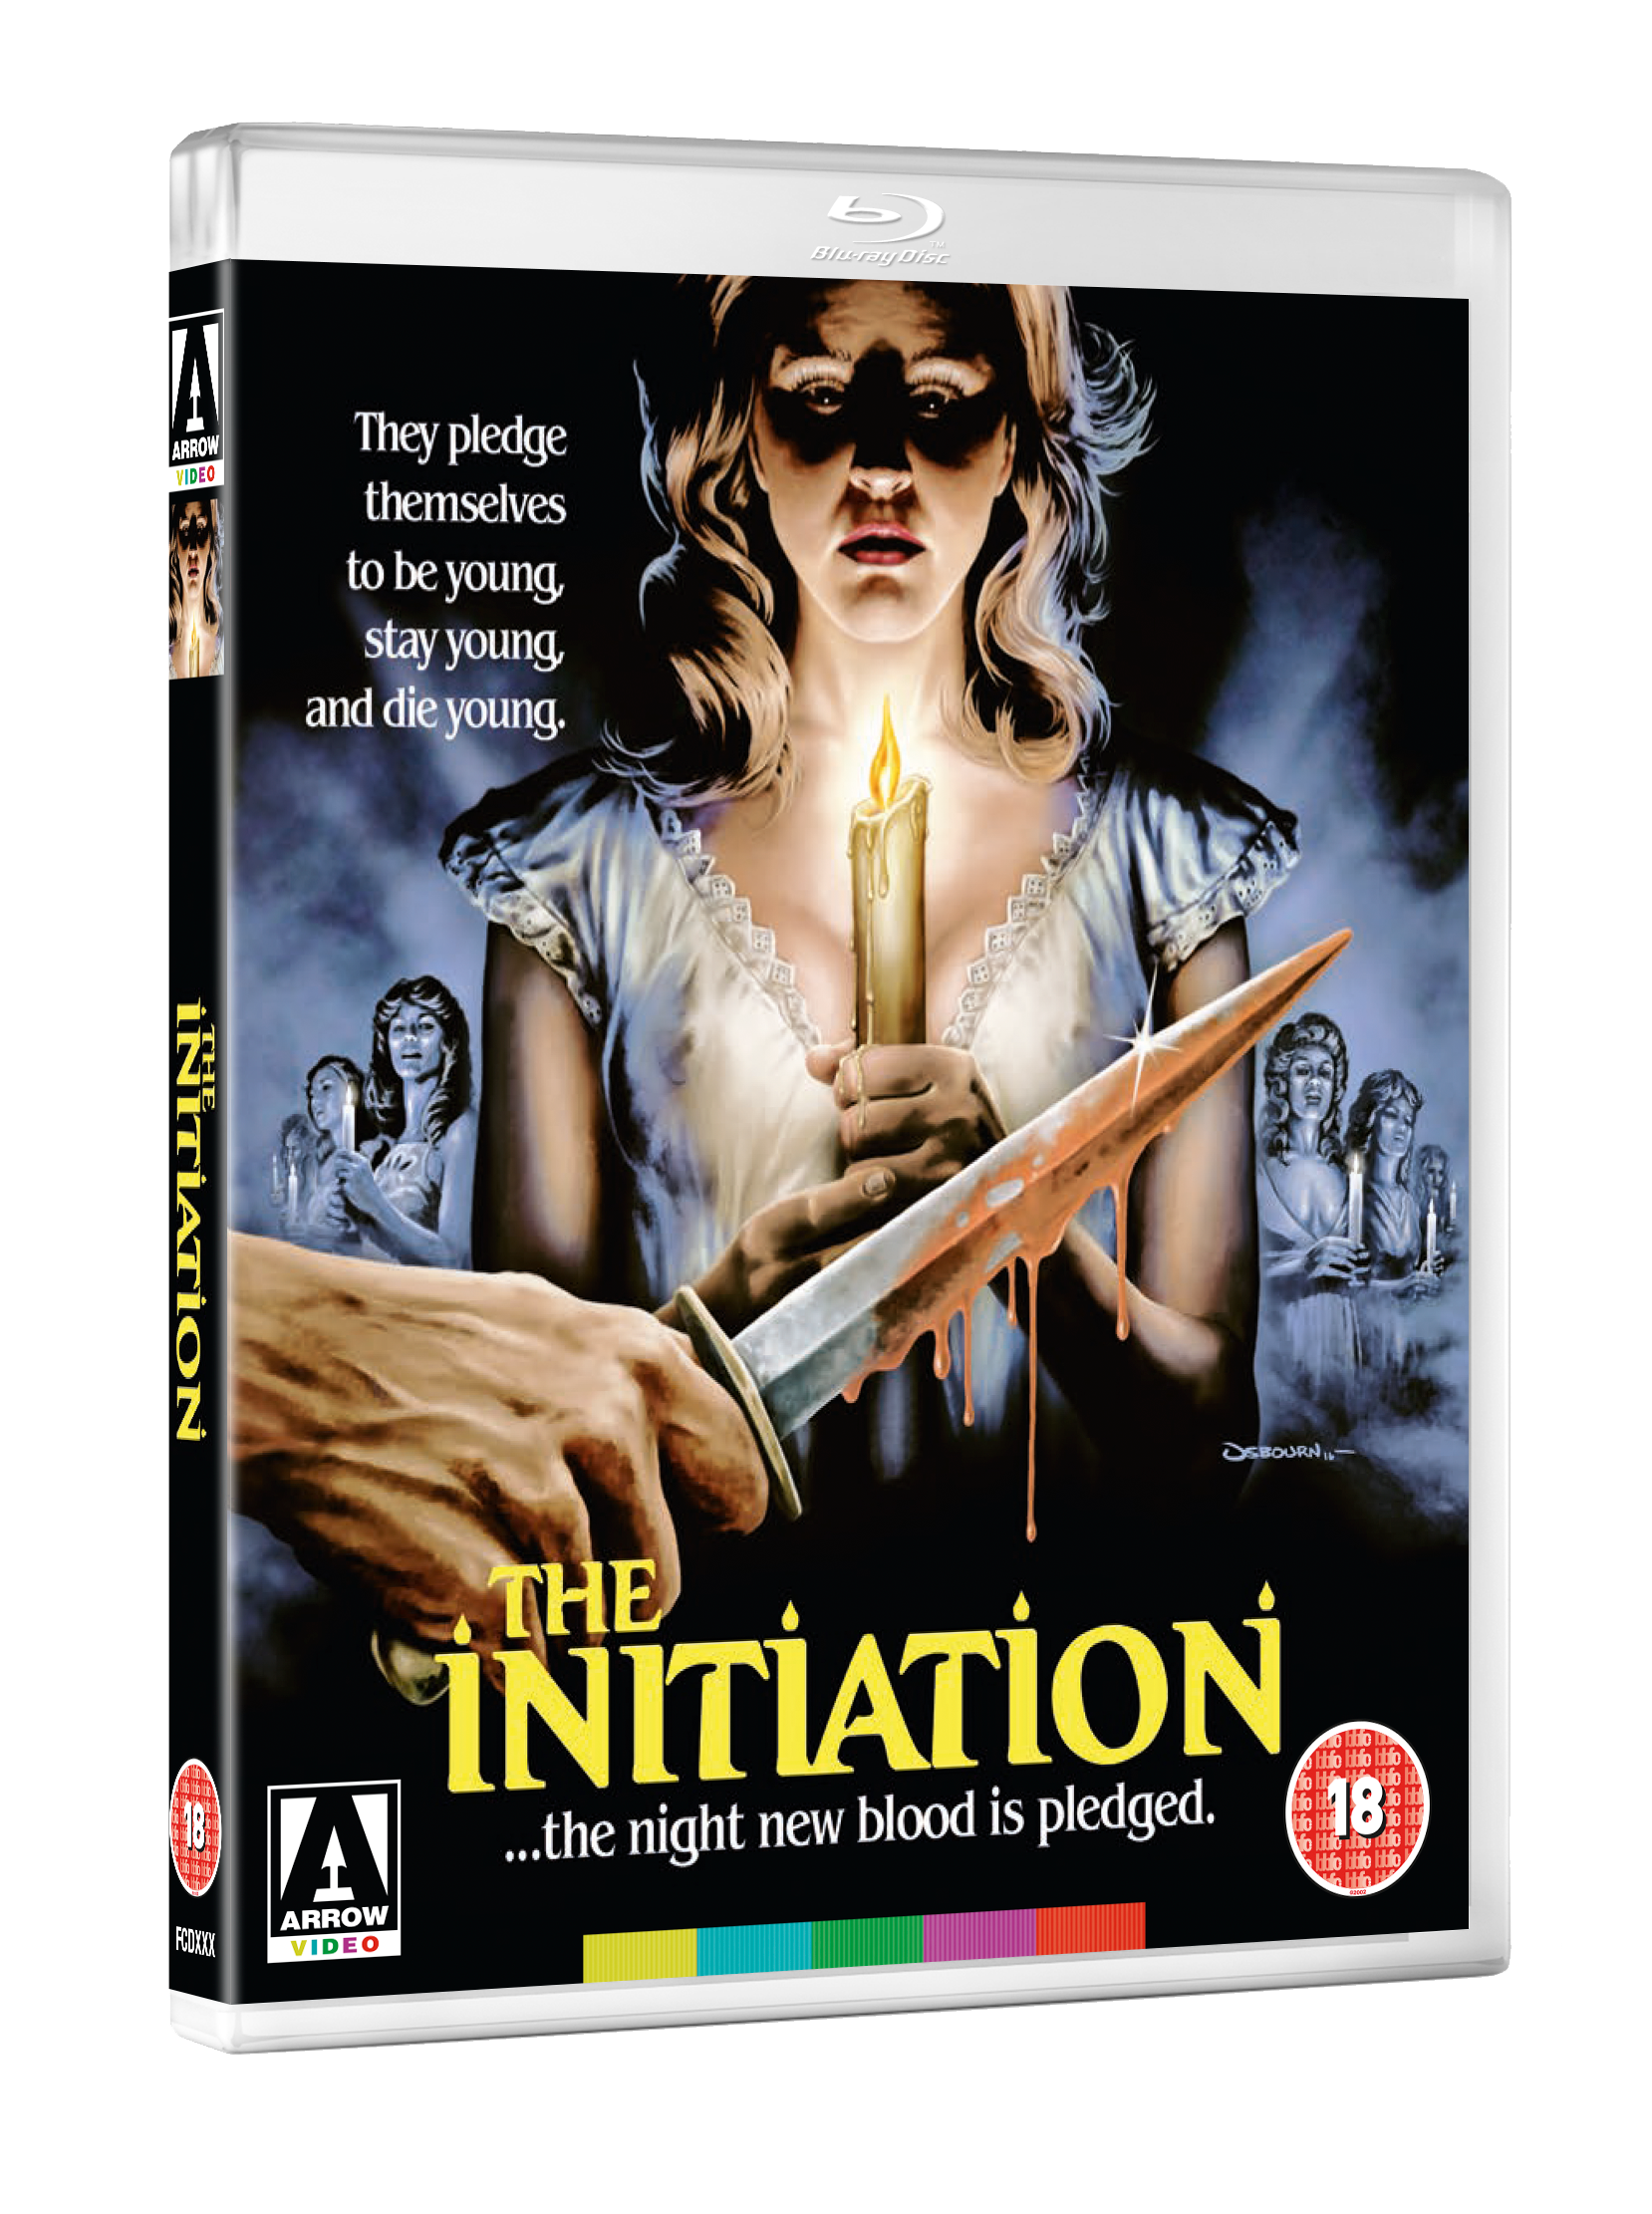 THE INITIATION 3D BD UK XgdRpxV Arrow Video announce November releases